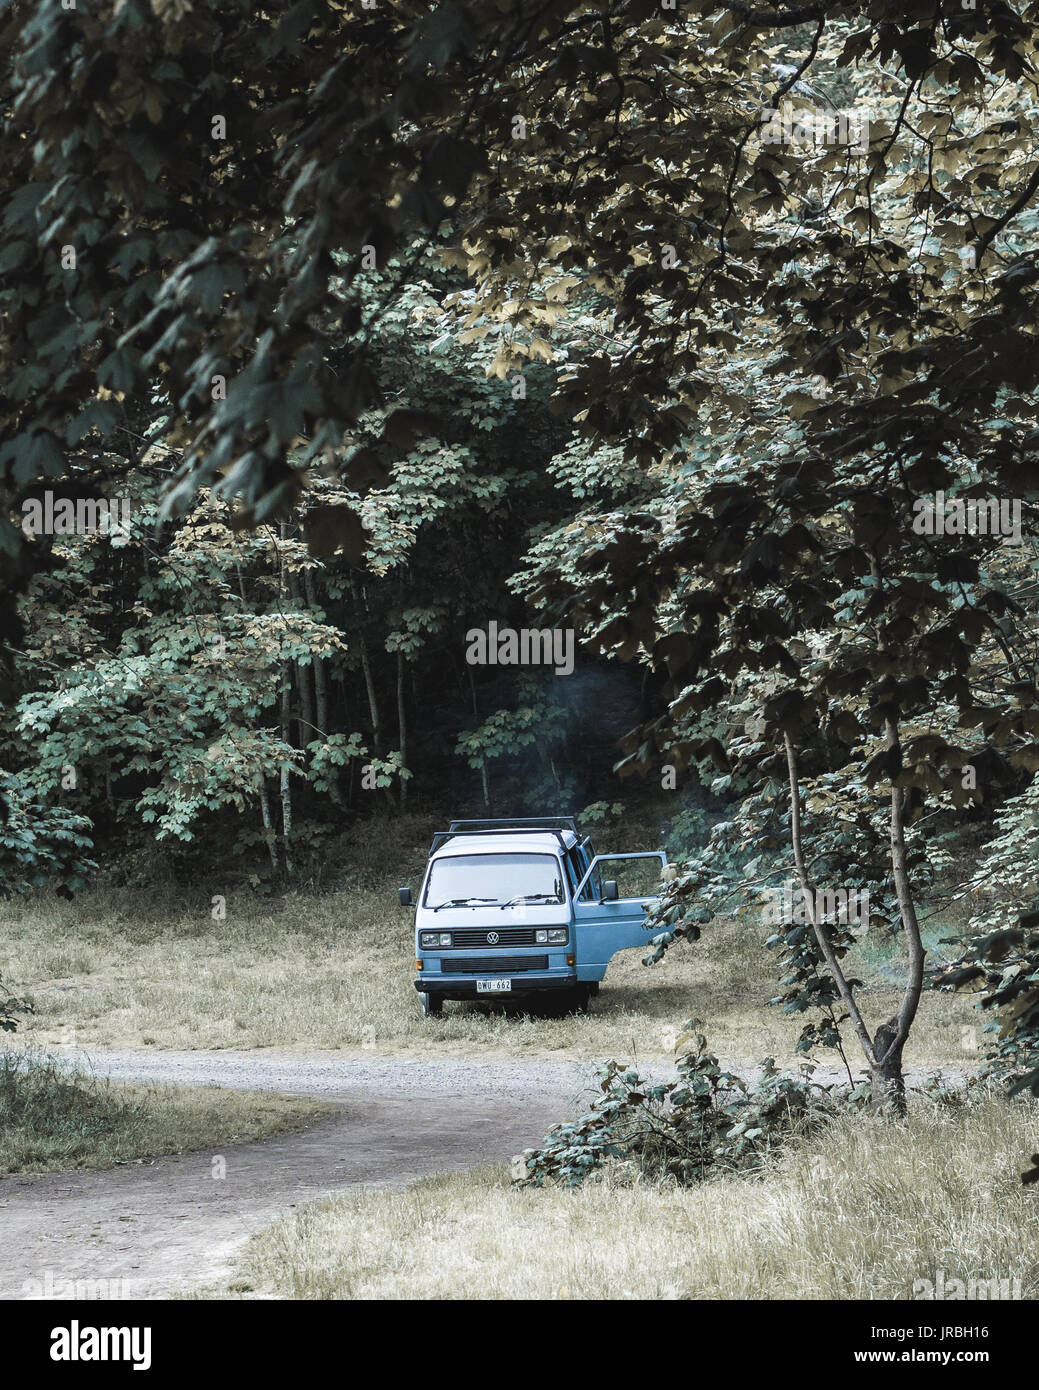 Blue hipster van parked for camping at Mt Franklin near Daylesford. Stock Photo